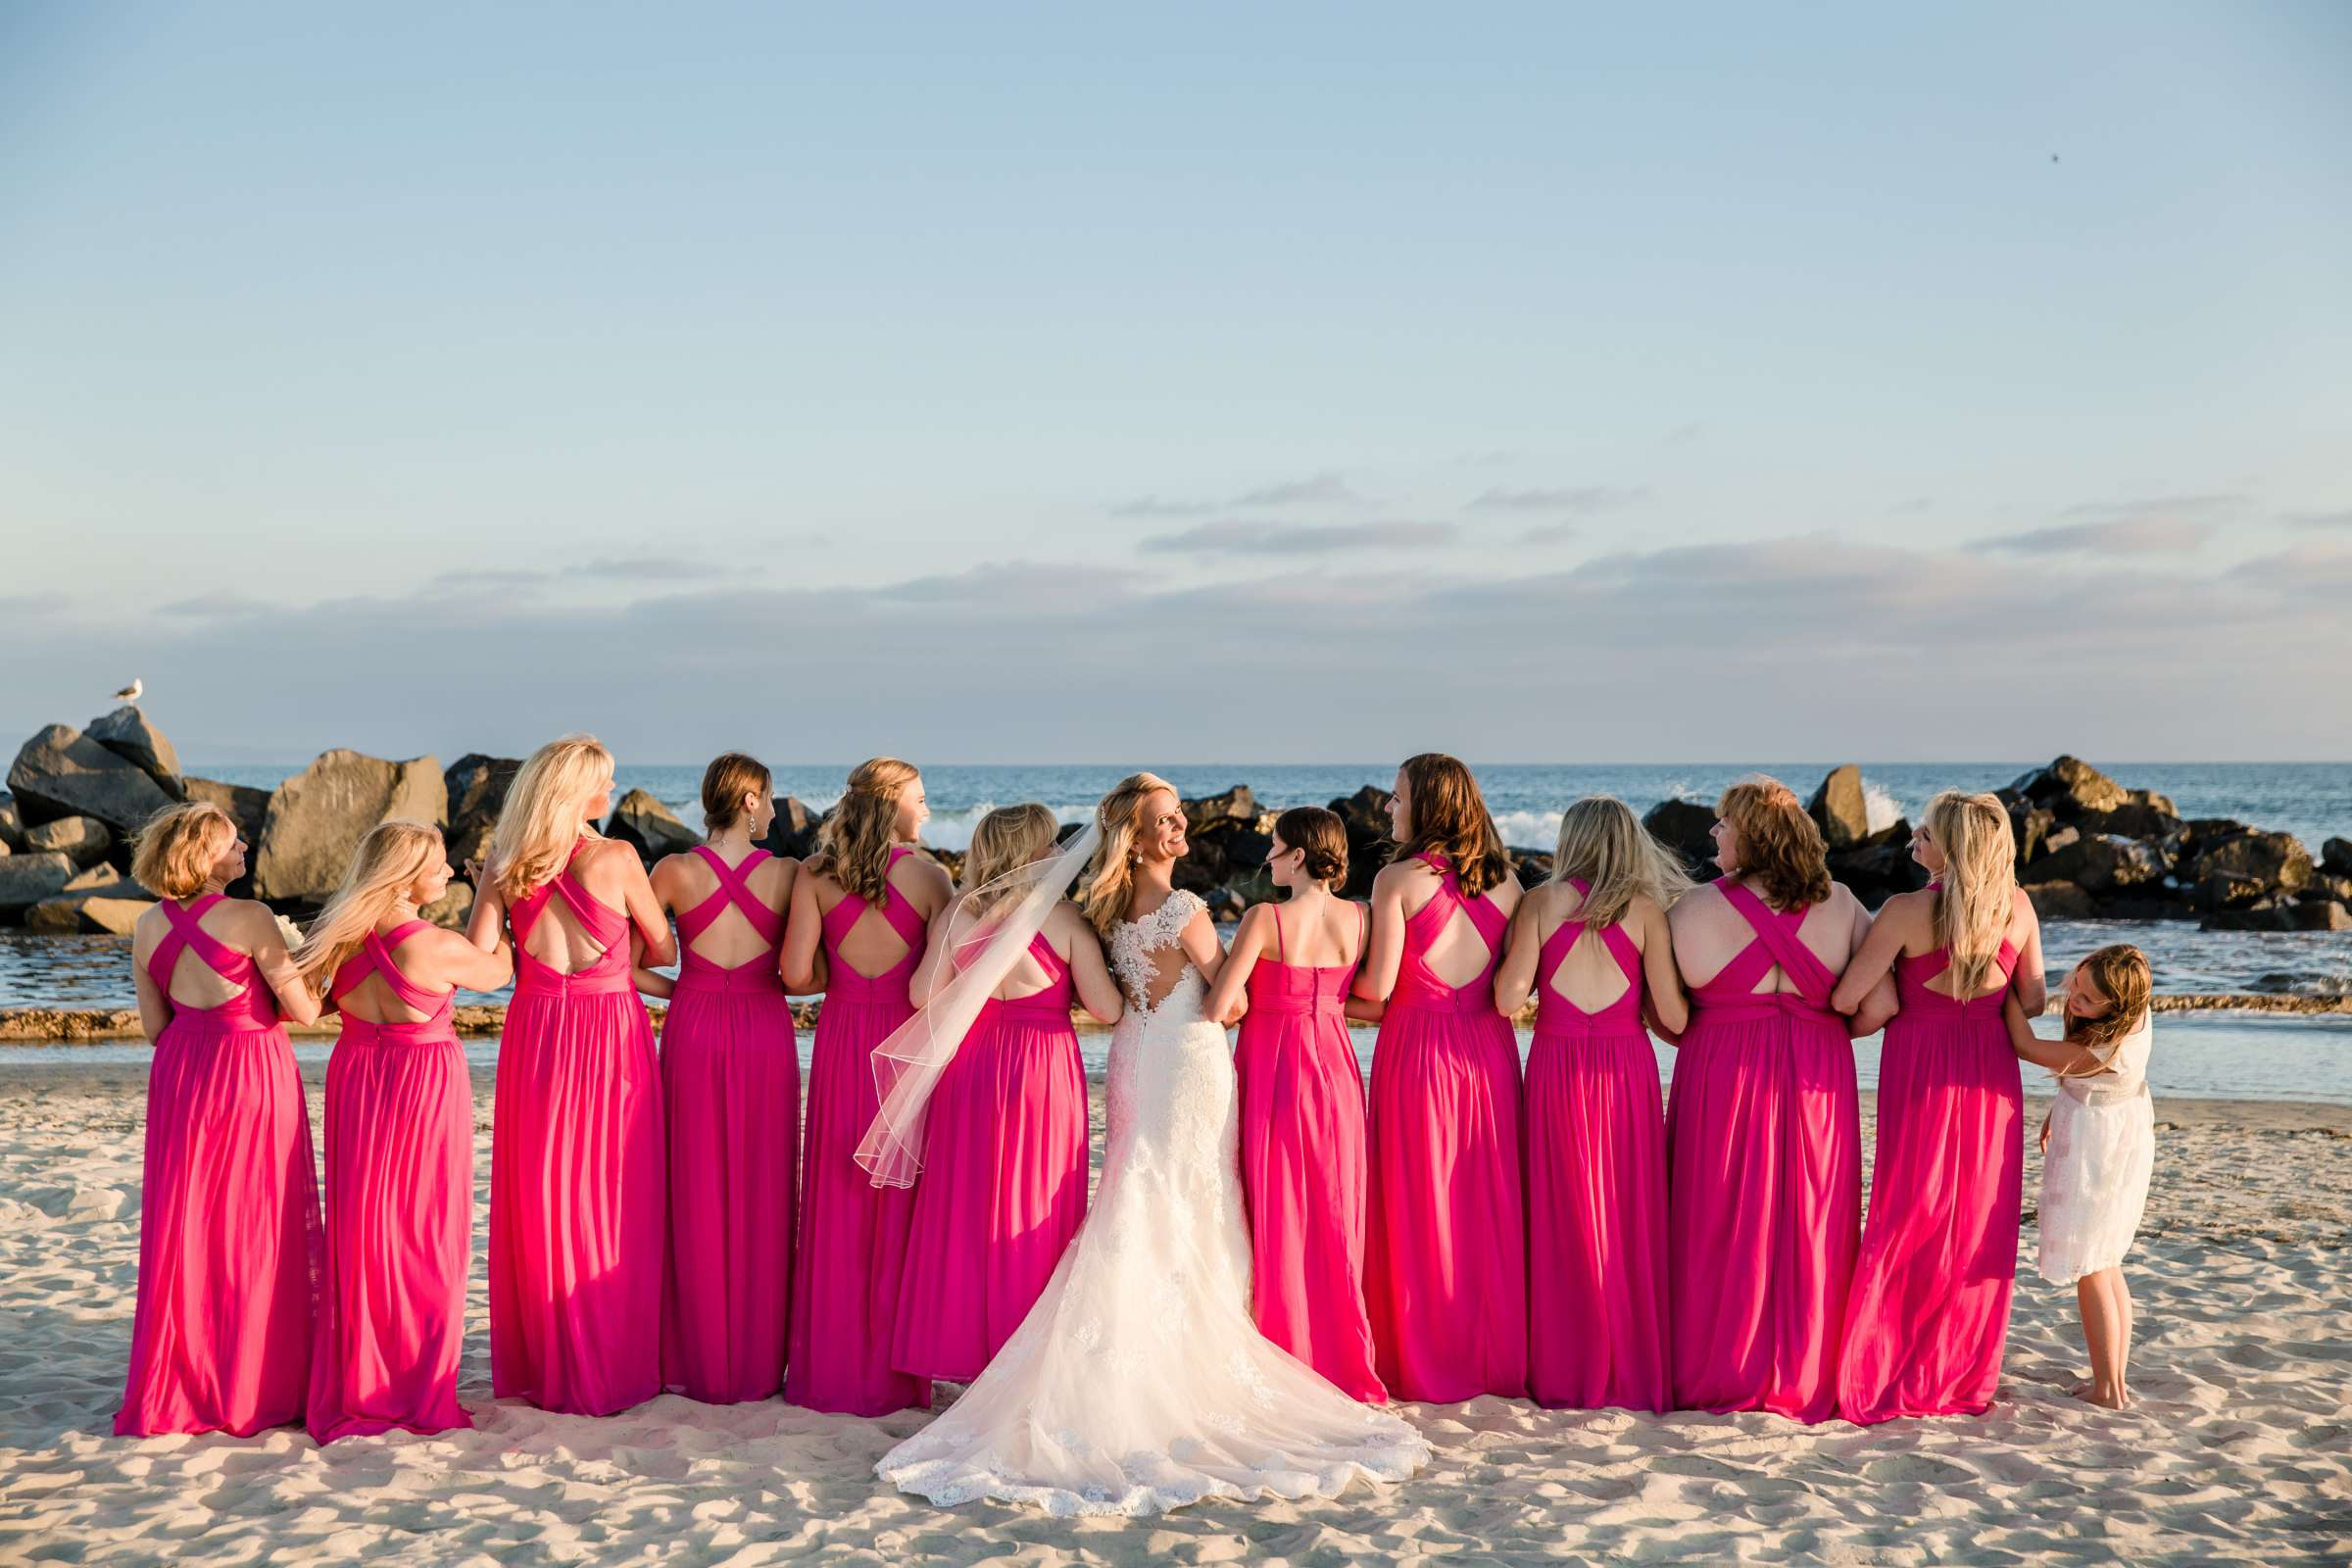 Hotel Del Coronado Wedding coordinated by Creative Affairs Inc, Diane and Paul Wedding Photo #22 by True Photography